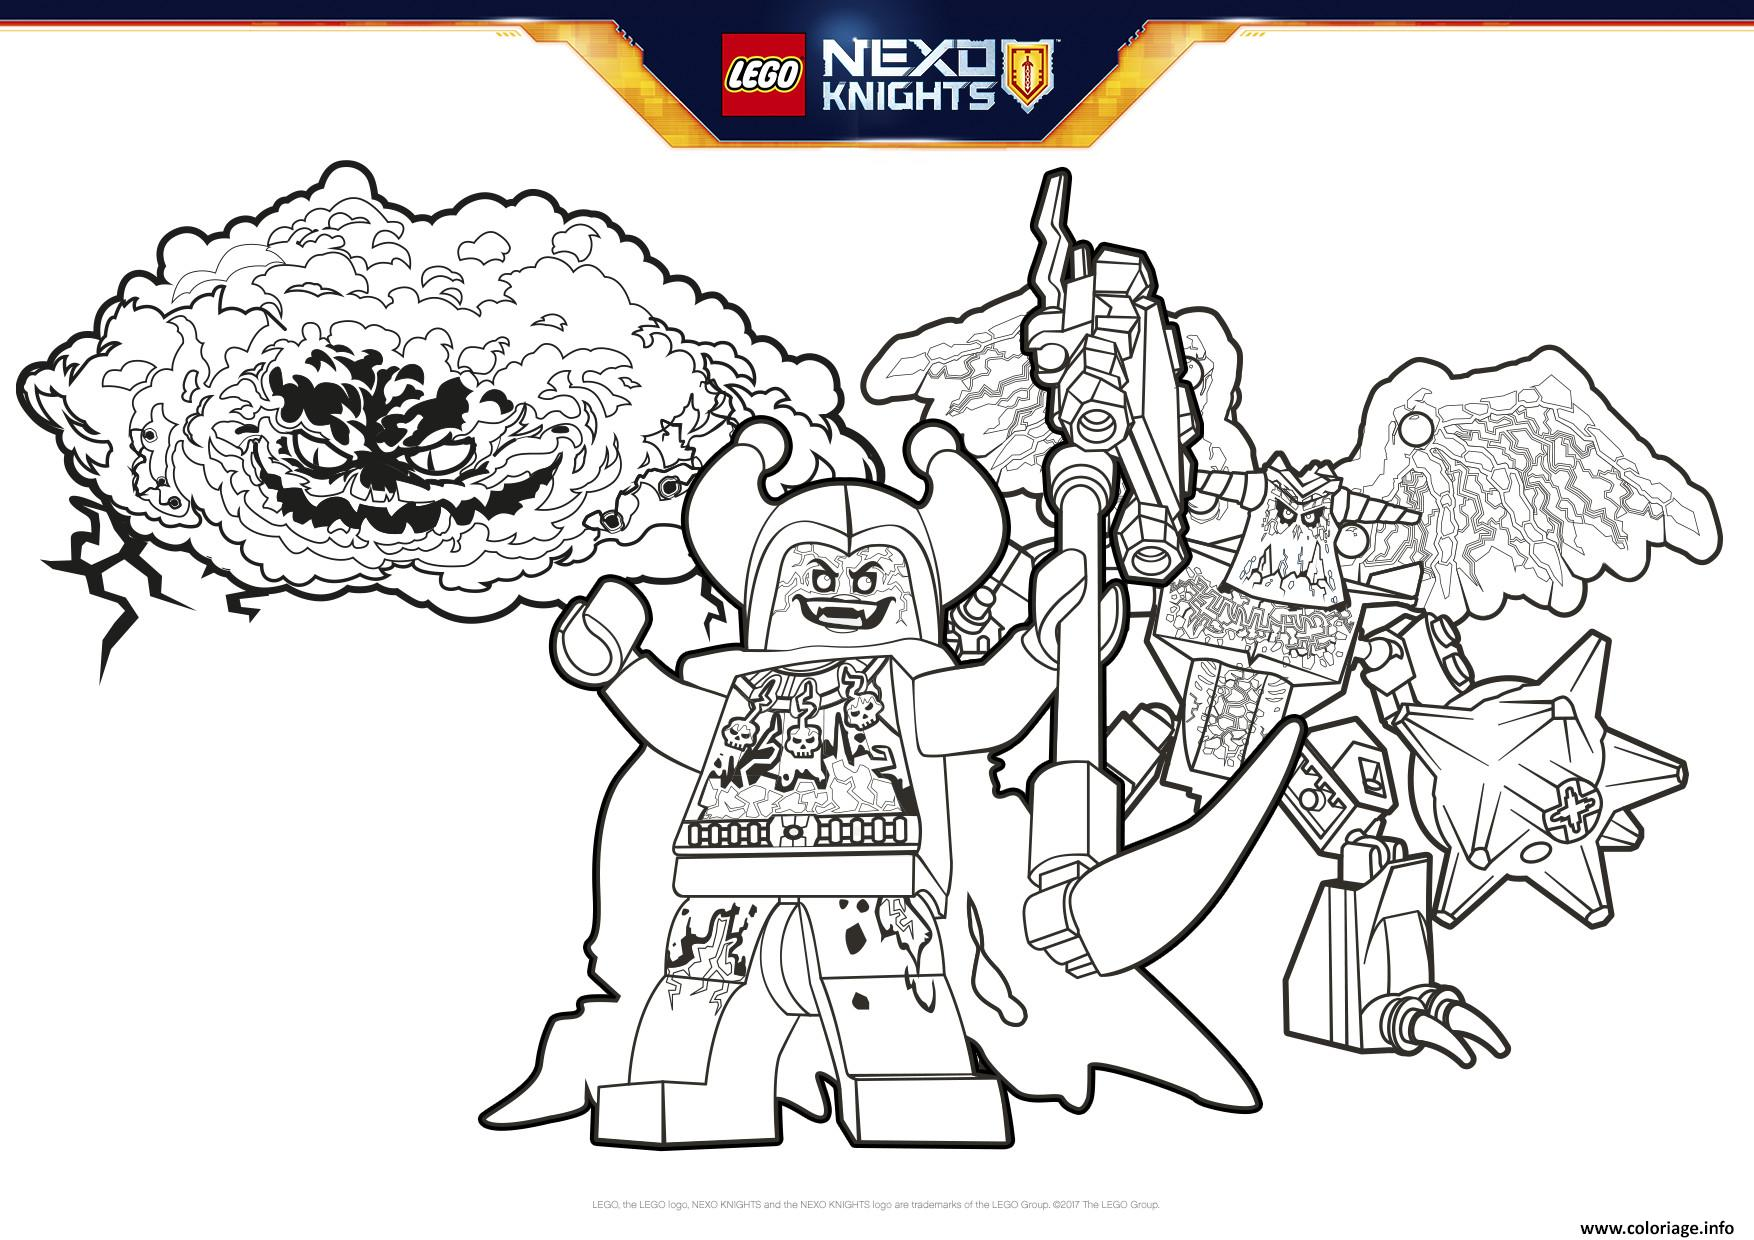 Coloriage Lego Nexo Knights BadGuys Formation Dessin à Imprimer